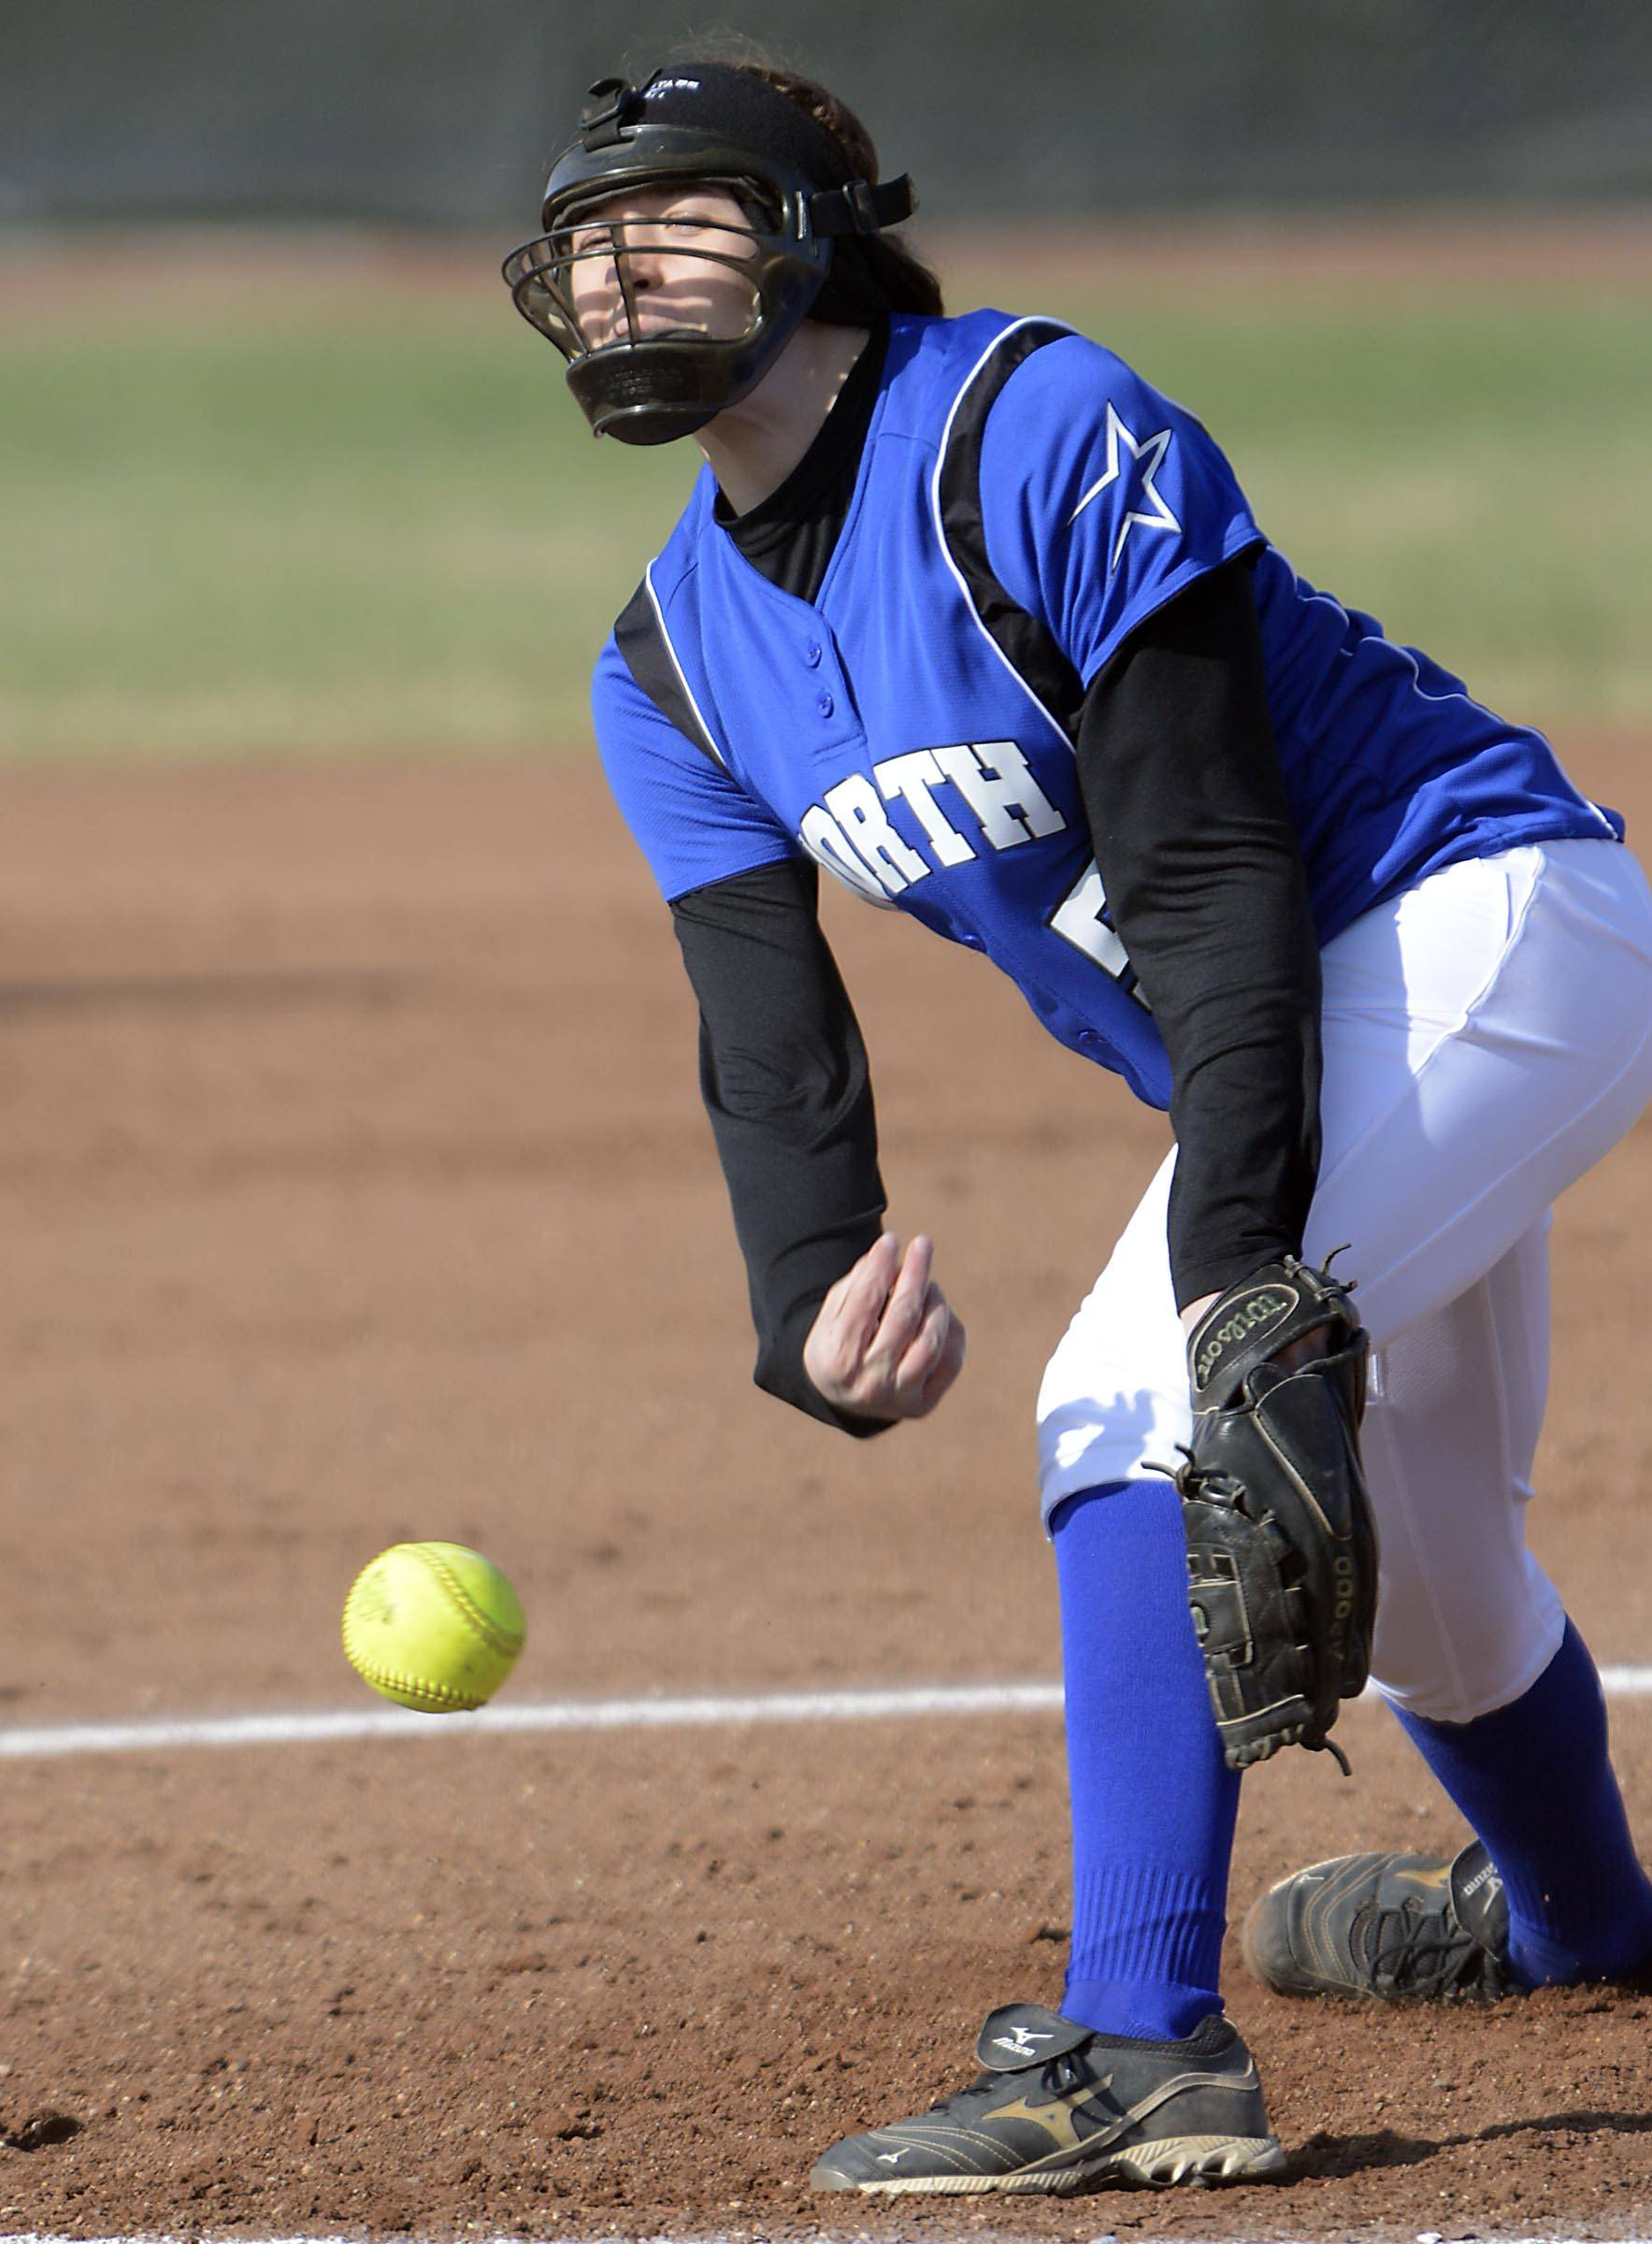 St. Charles North pitcher Sabrina Rabin against Bartlett Wednesday in Bartlett.